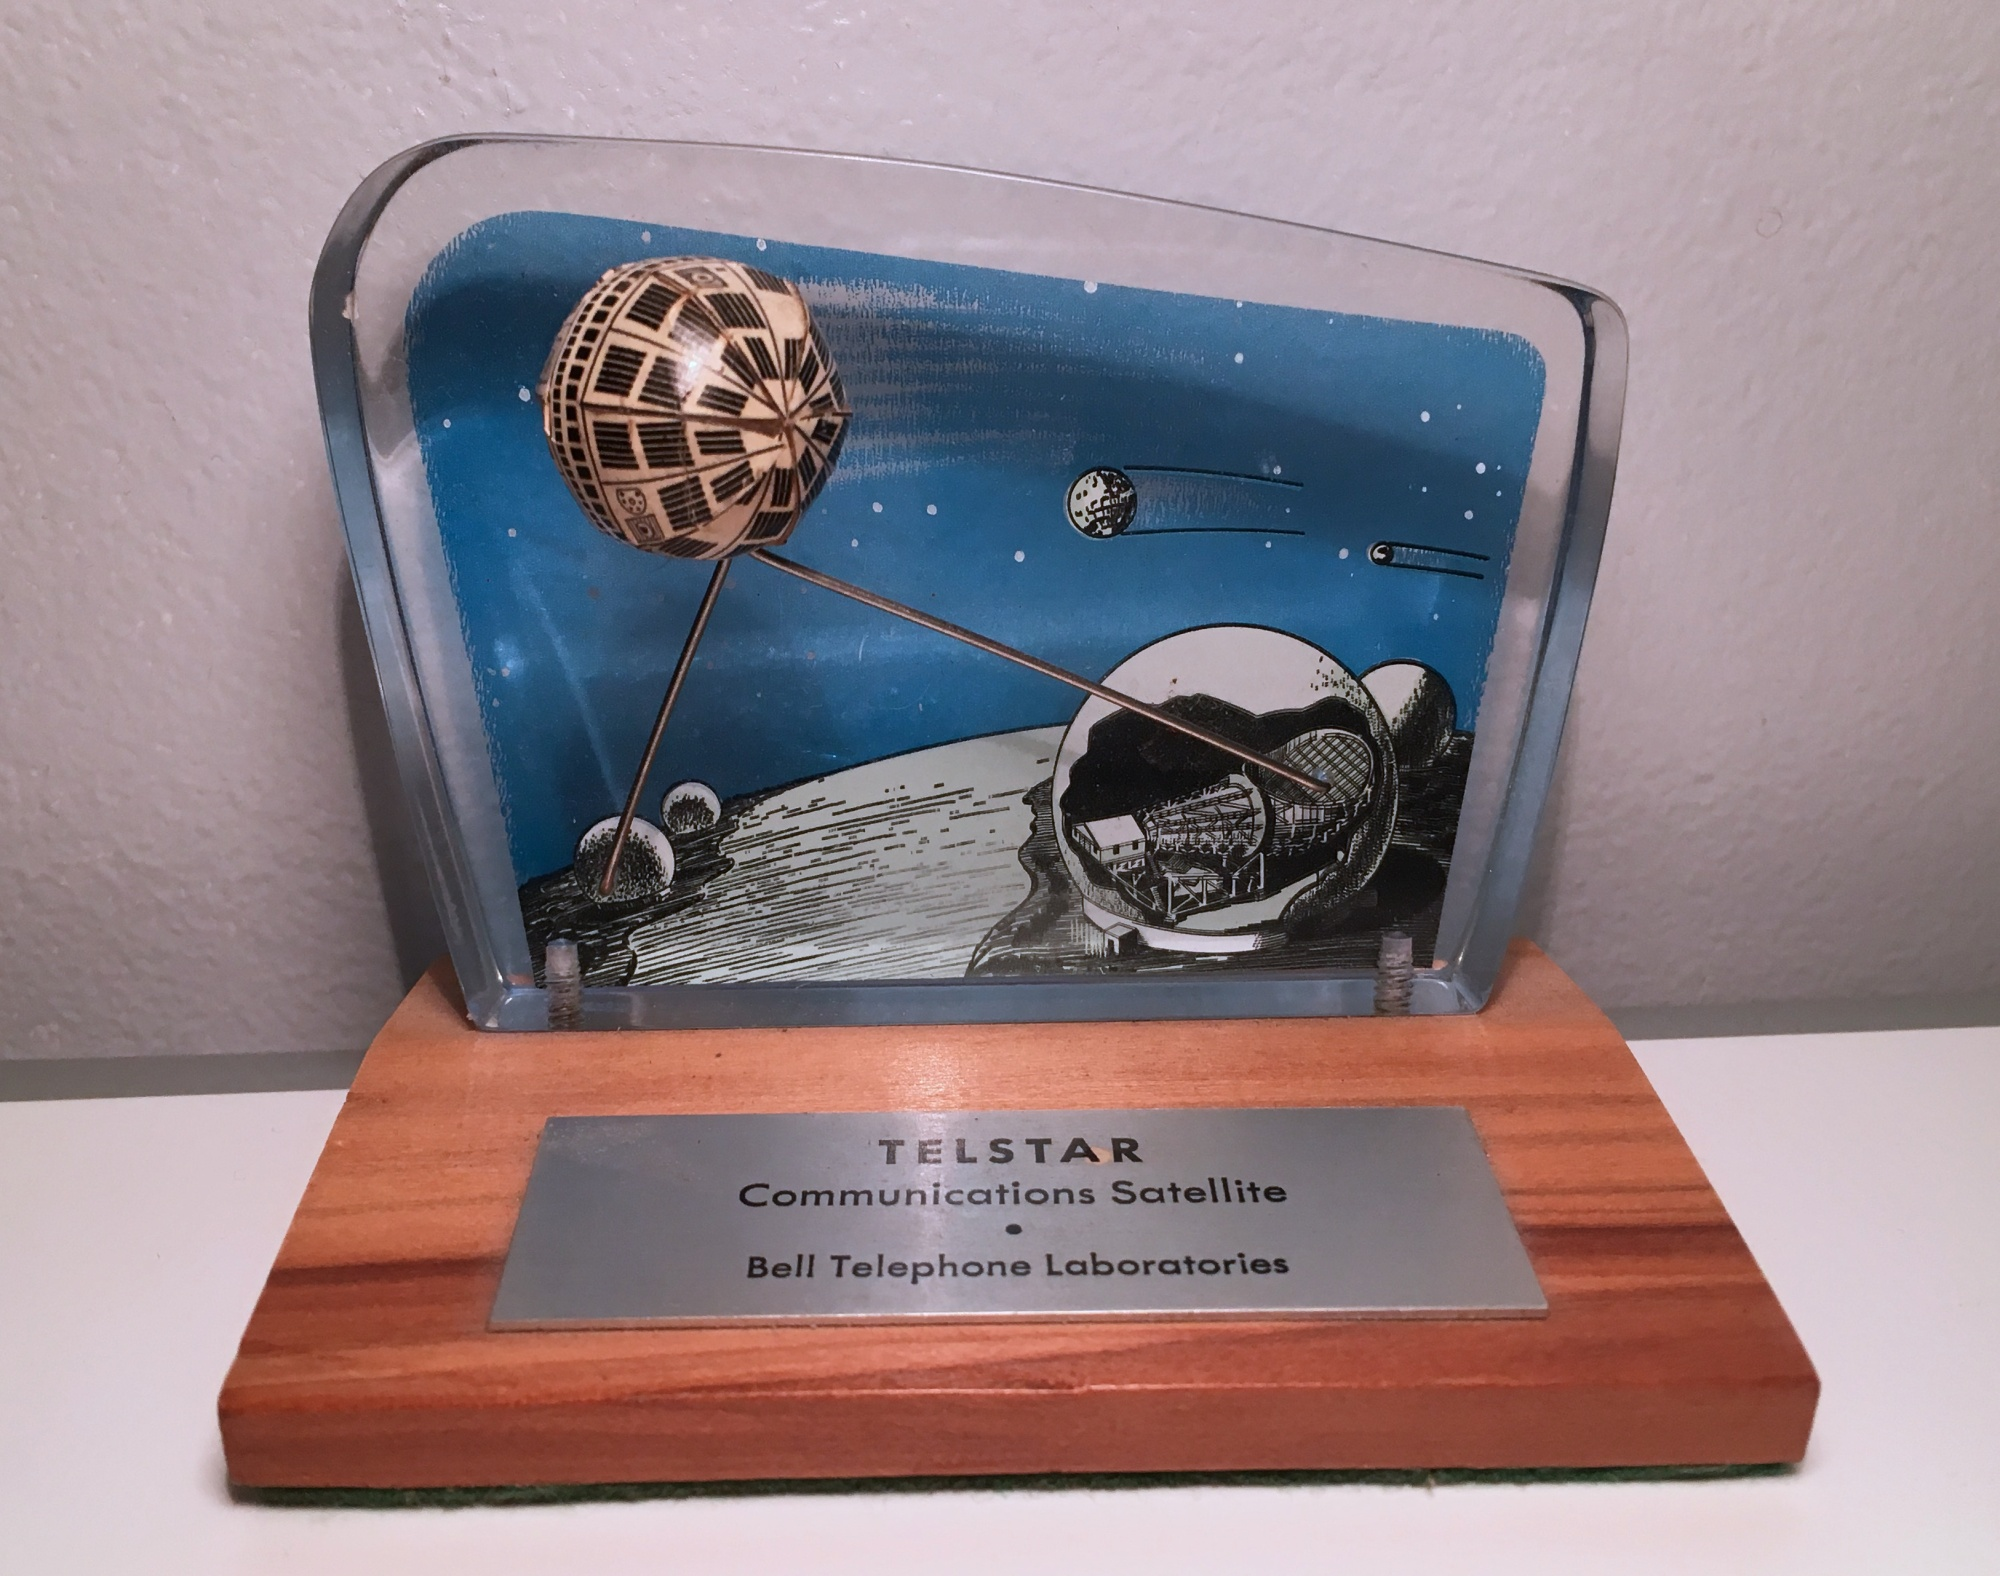 Telstar commemorative plaque